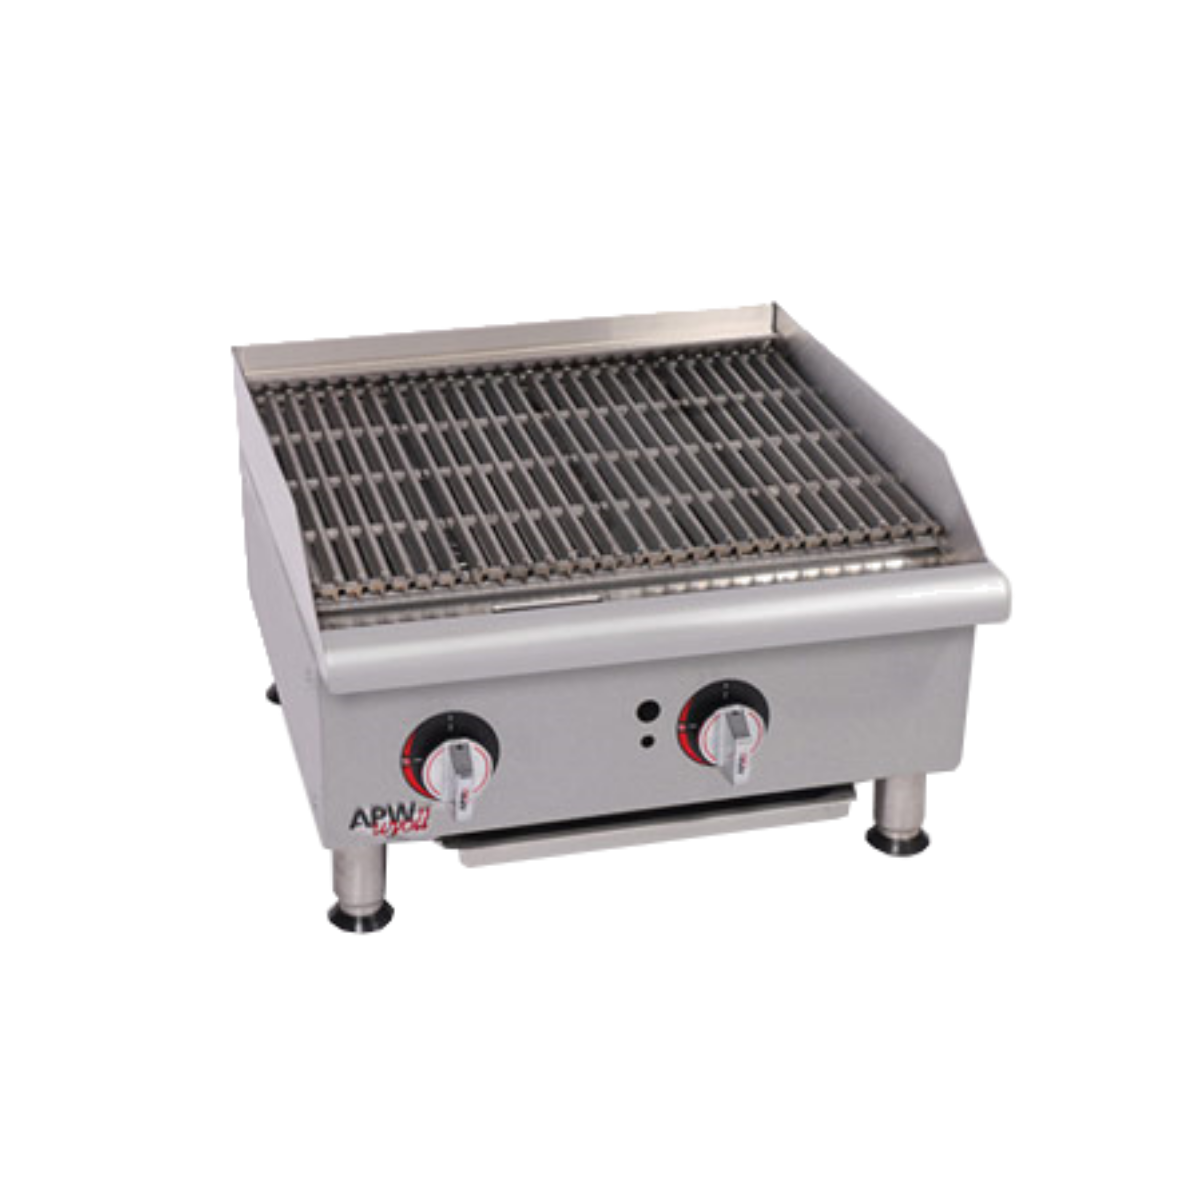 APW GCB-24IS Charbroiler, Gas, Countertop w/Safety Pilot